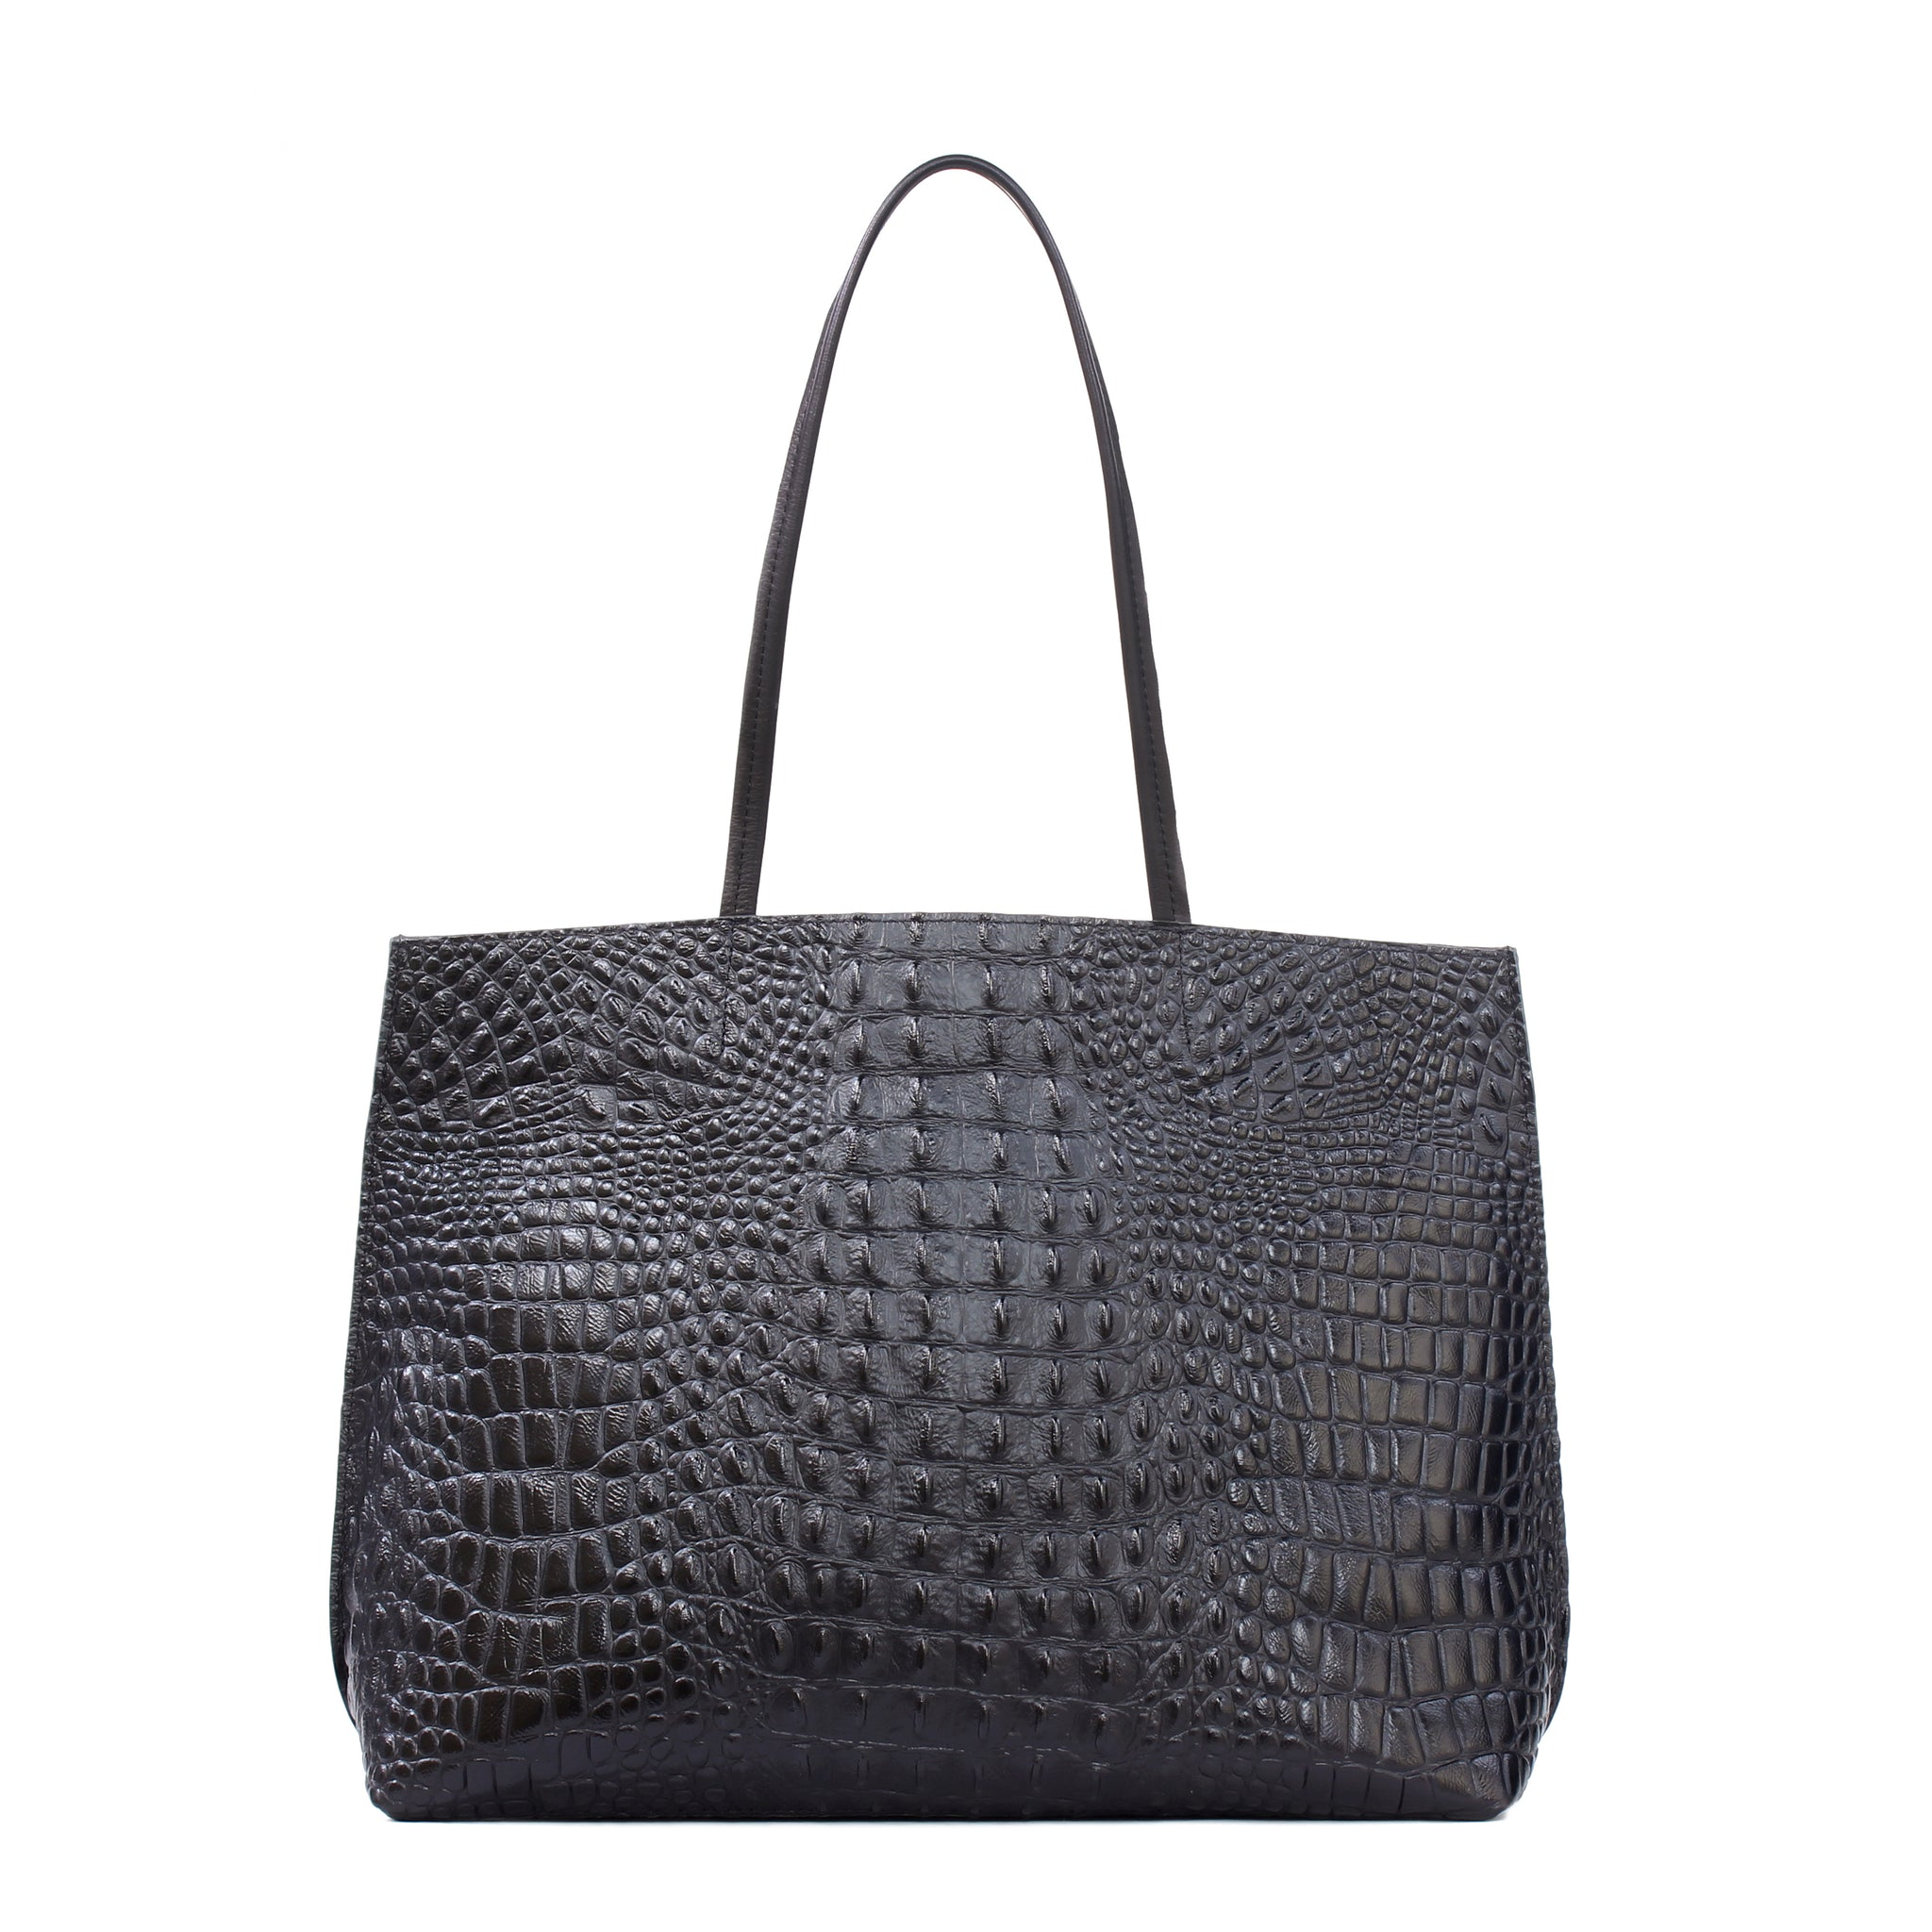 CLASSIC SHOPPER BLACK EMBOSSED CROC